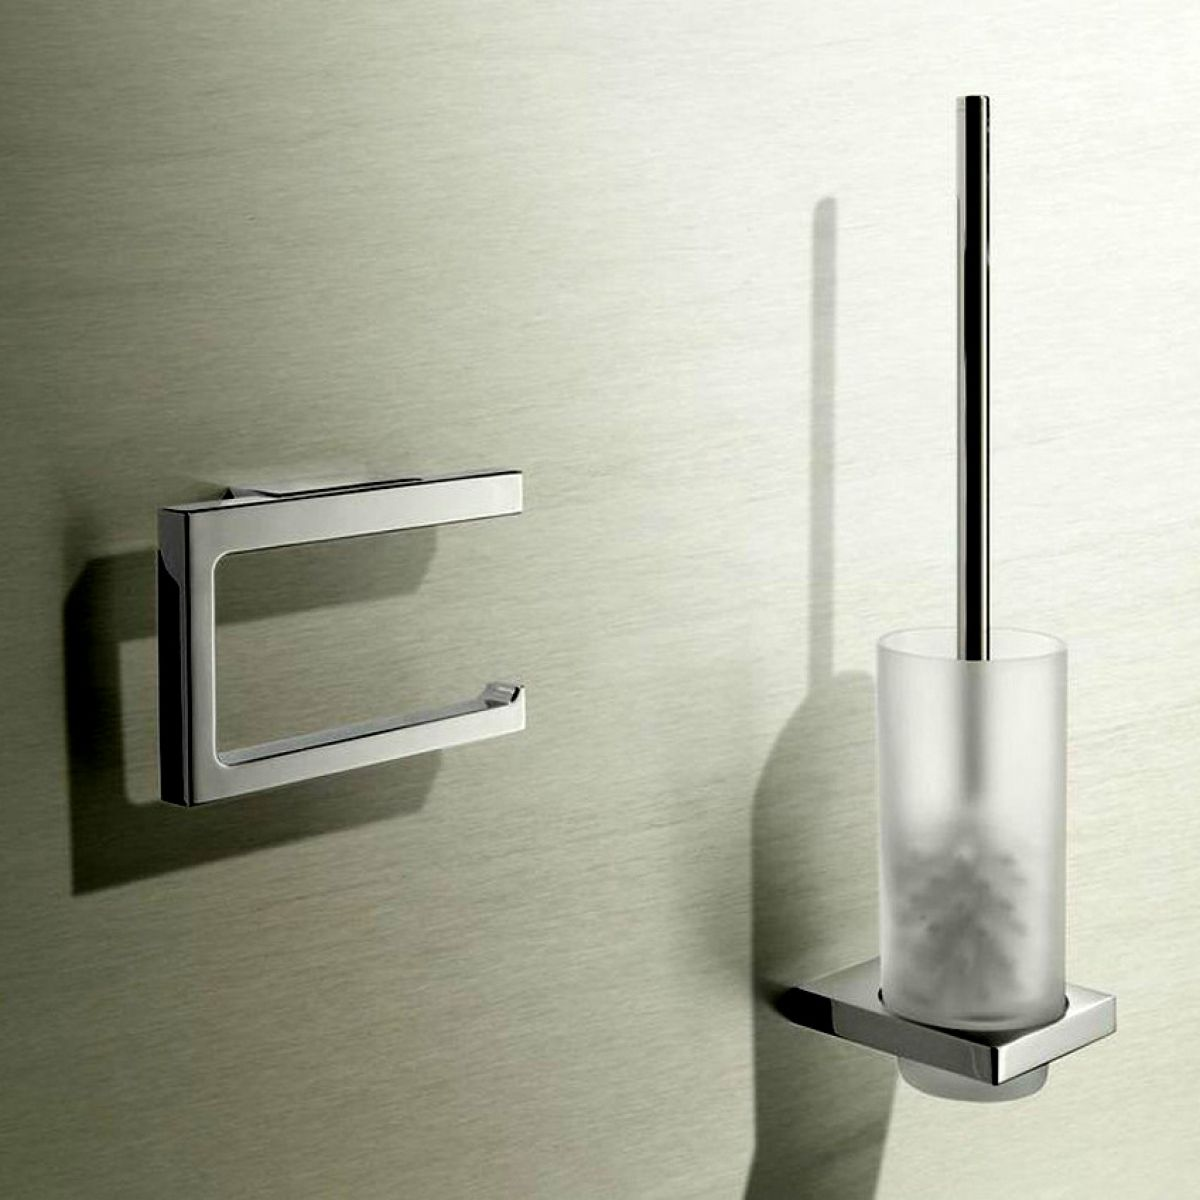 keuco edition 11 toilet roll holder uk bathrooms. Black Bedroom Furniture Sets. Home Design Ideas